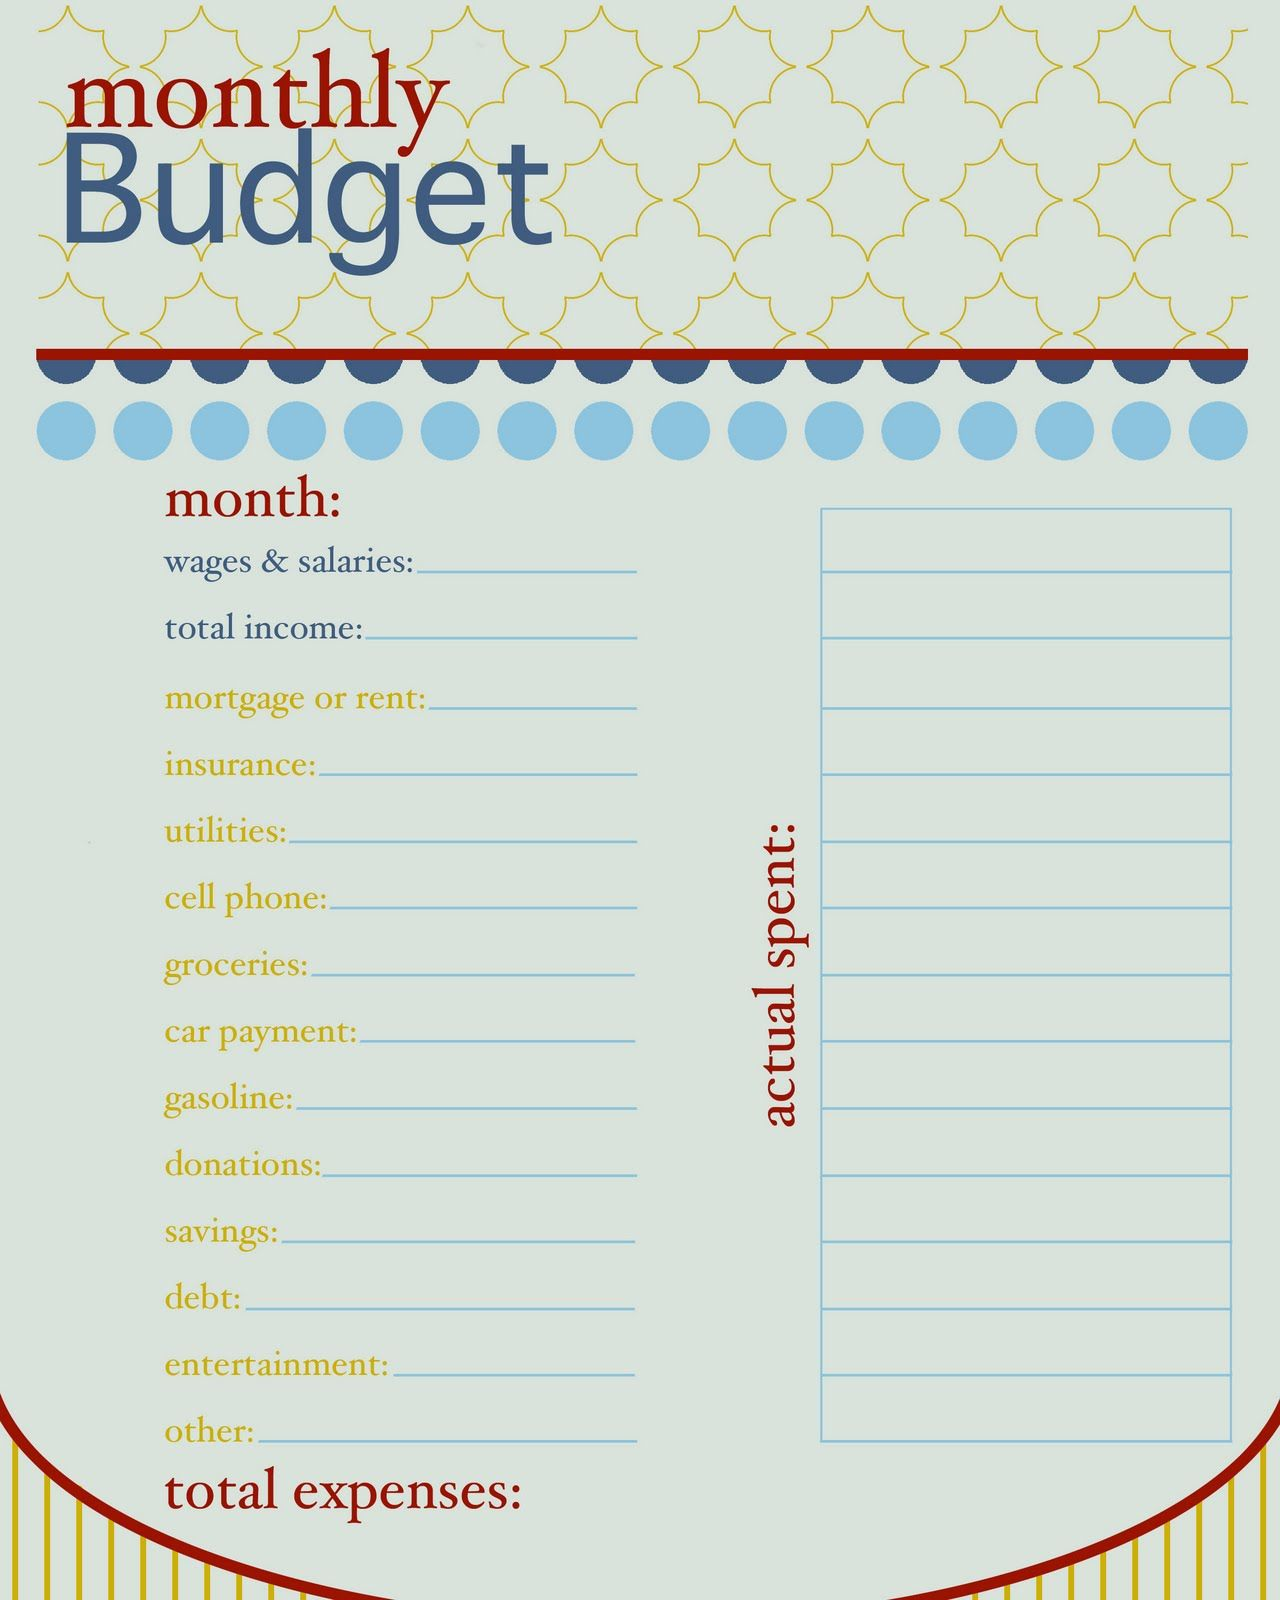 Worksheet Blank Monthly Budget Worksheet 1000 images about household notebook budget binder on pinterest calendar and cleaning schedules